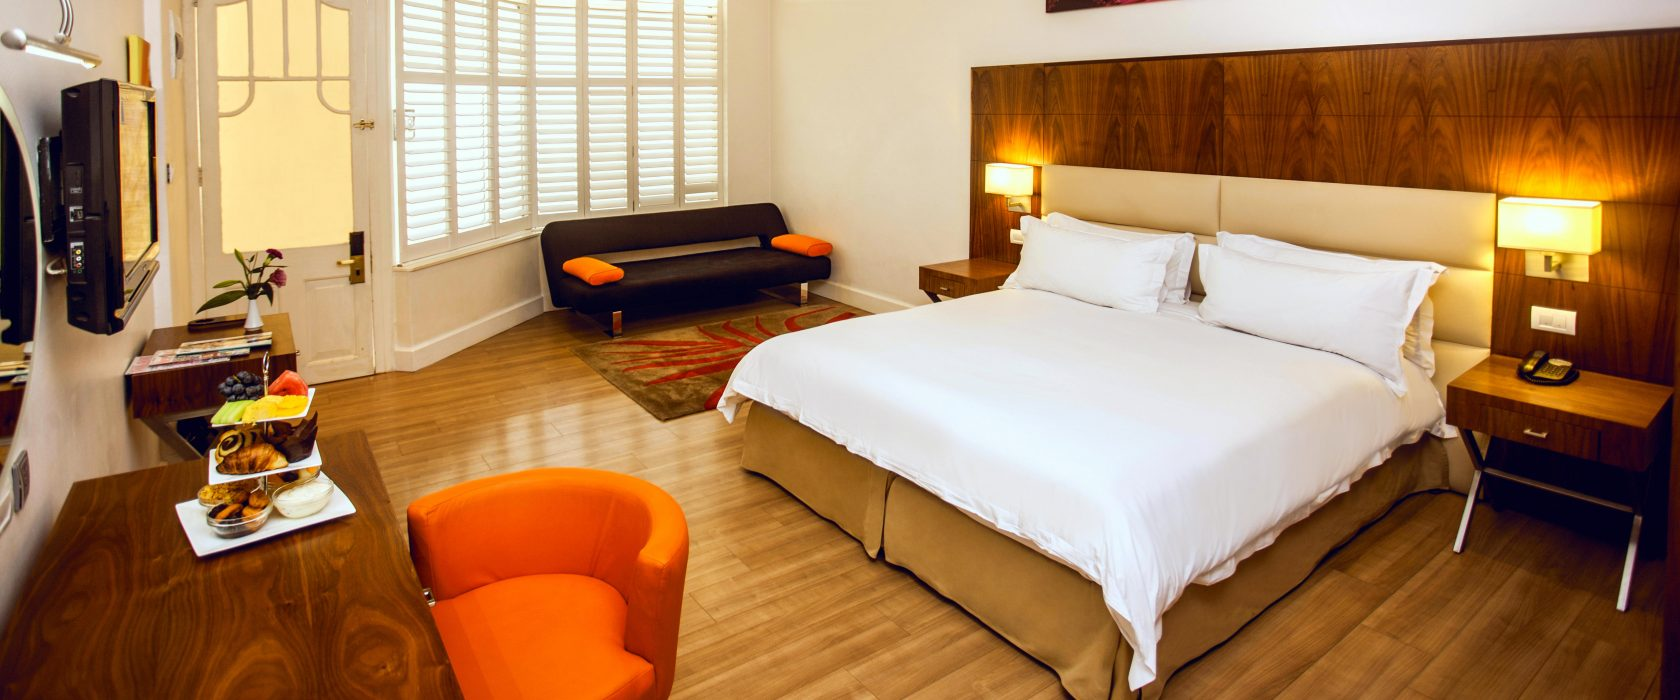 Gold Reef City hotel bedroom with a double bed